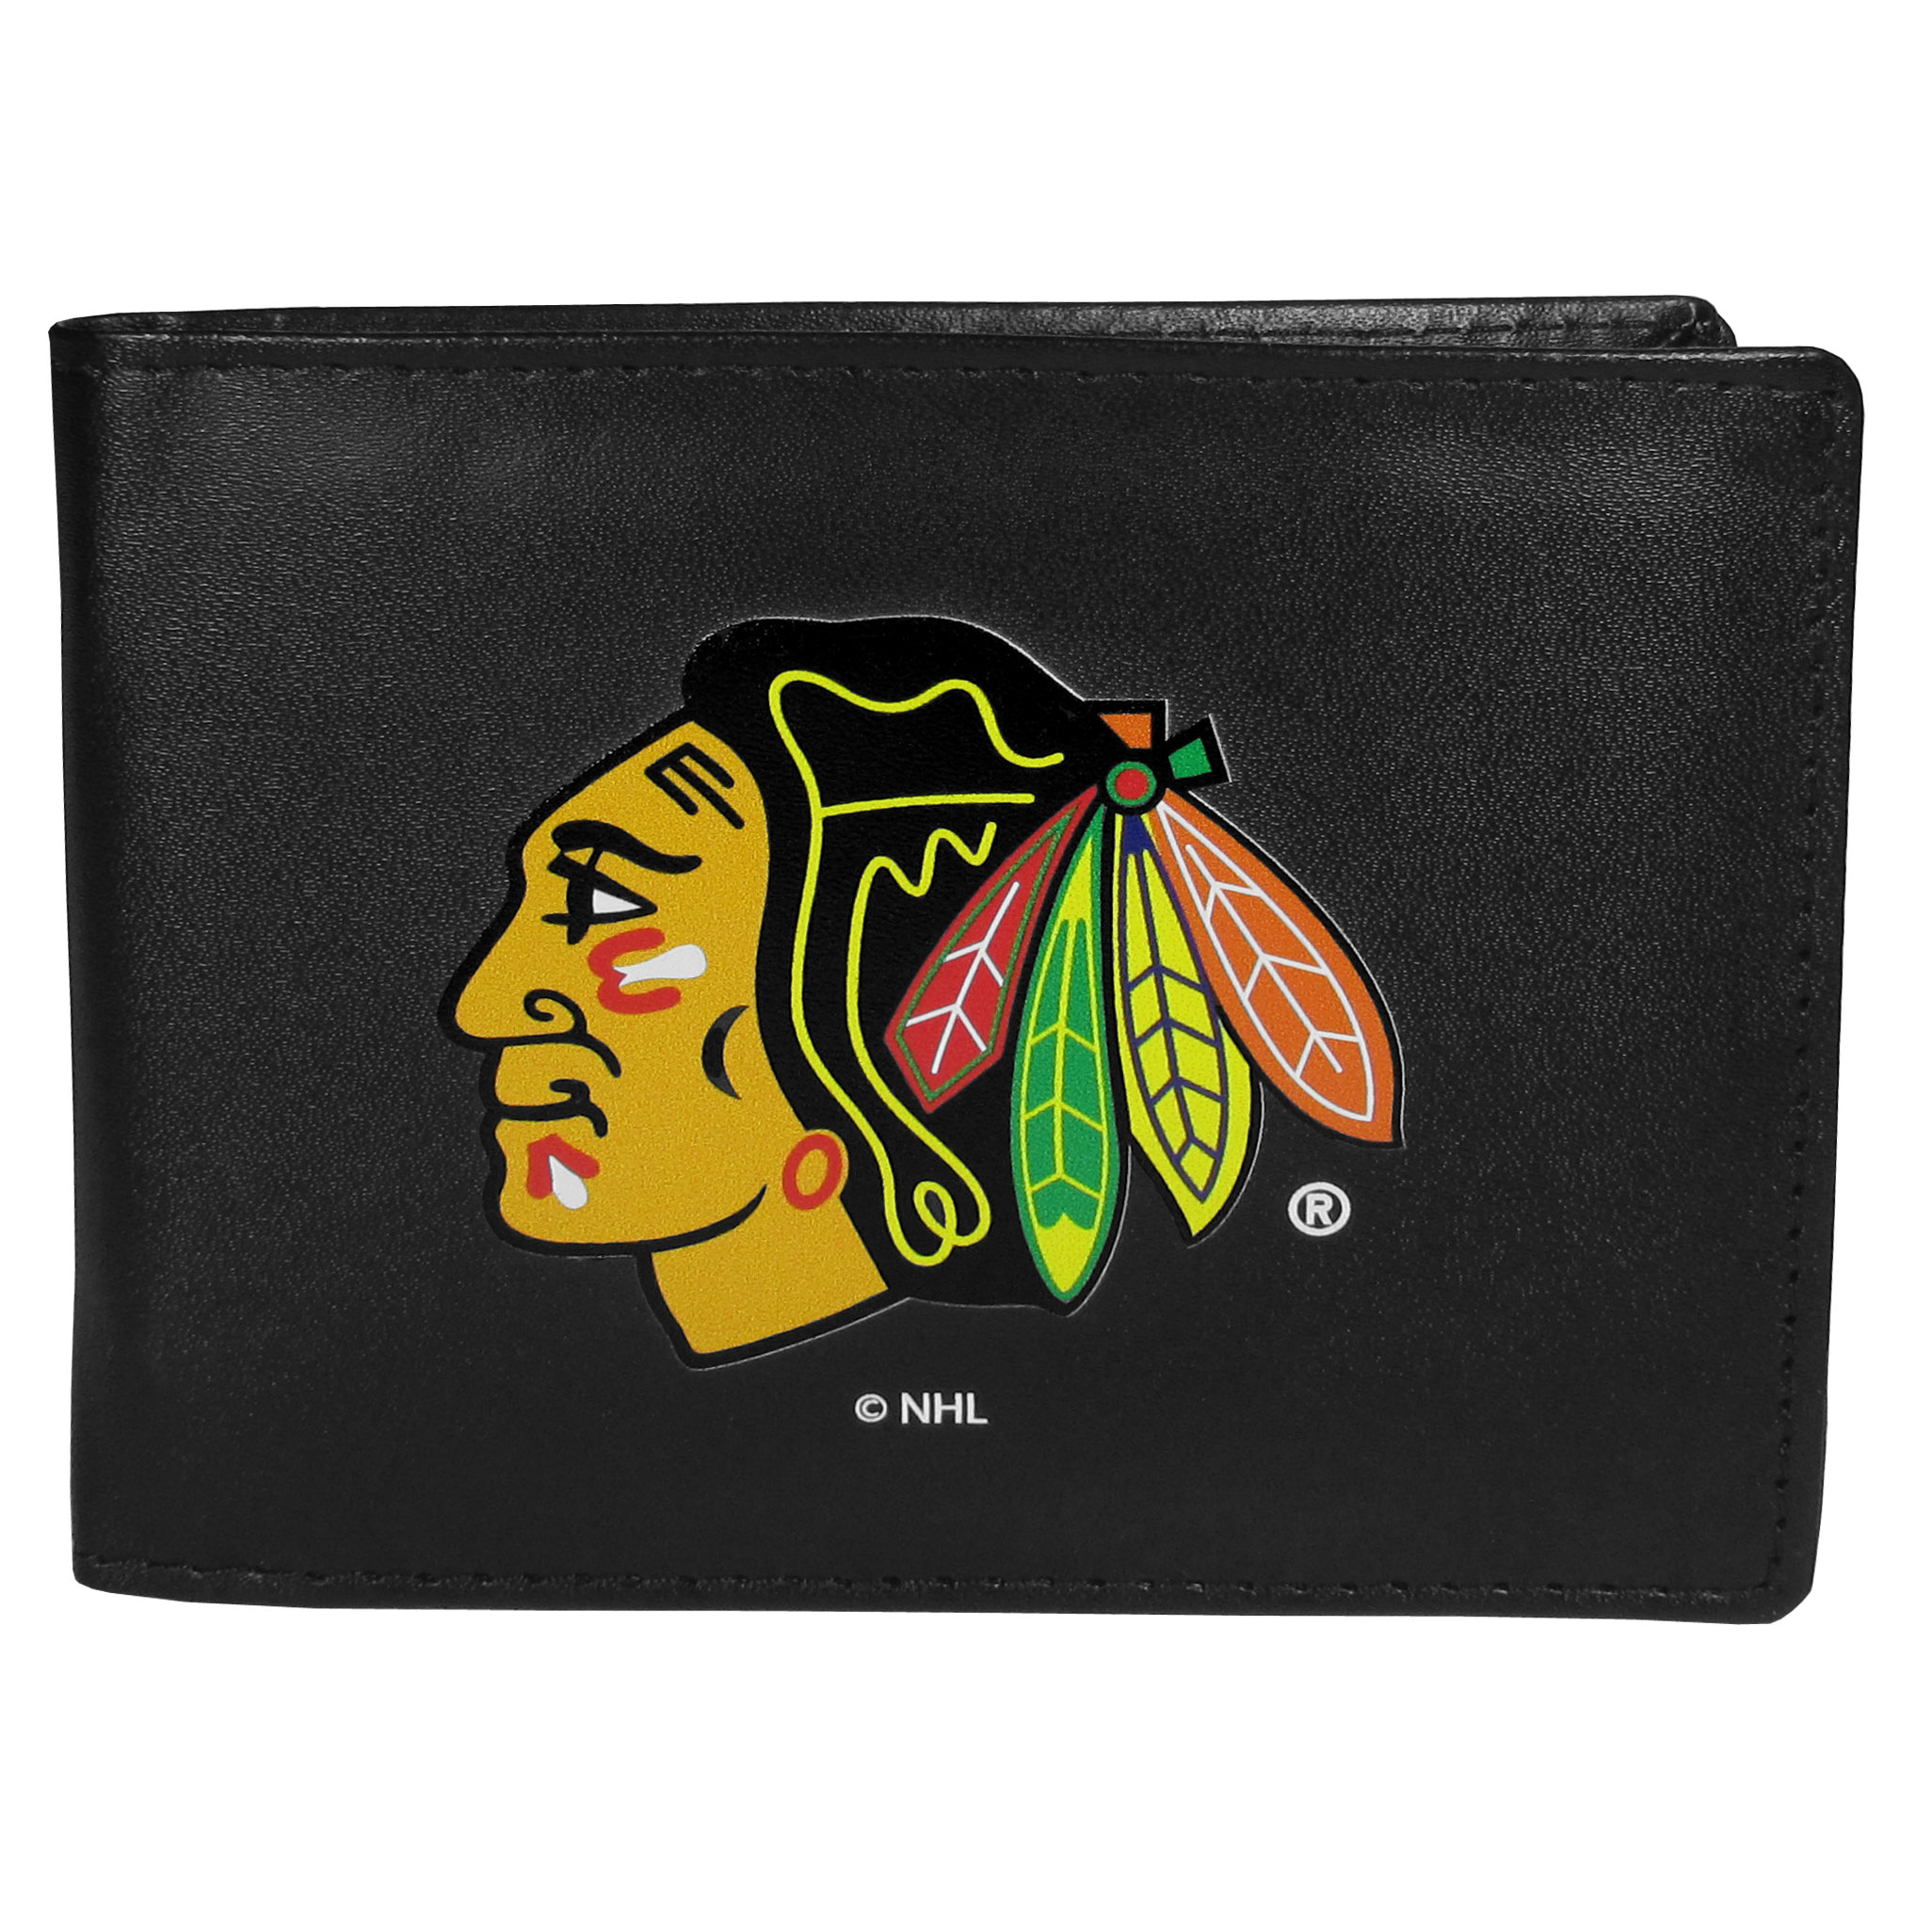 Chicago Blackhawks® Leather Bi-fold Wallet, Large Logo - Our classic fine leather bi-fold wallet is meticulously crafted with genuine leather that will age beautifully so you will have a quality wallet for years to come. The wallet opens to a large, billfold pocket and numerous credit card slots and has a convenient windowed ID slot. The front of the wallet features an extra large Chicago Blackhawks® printed logo.